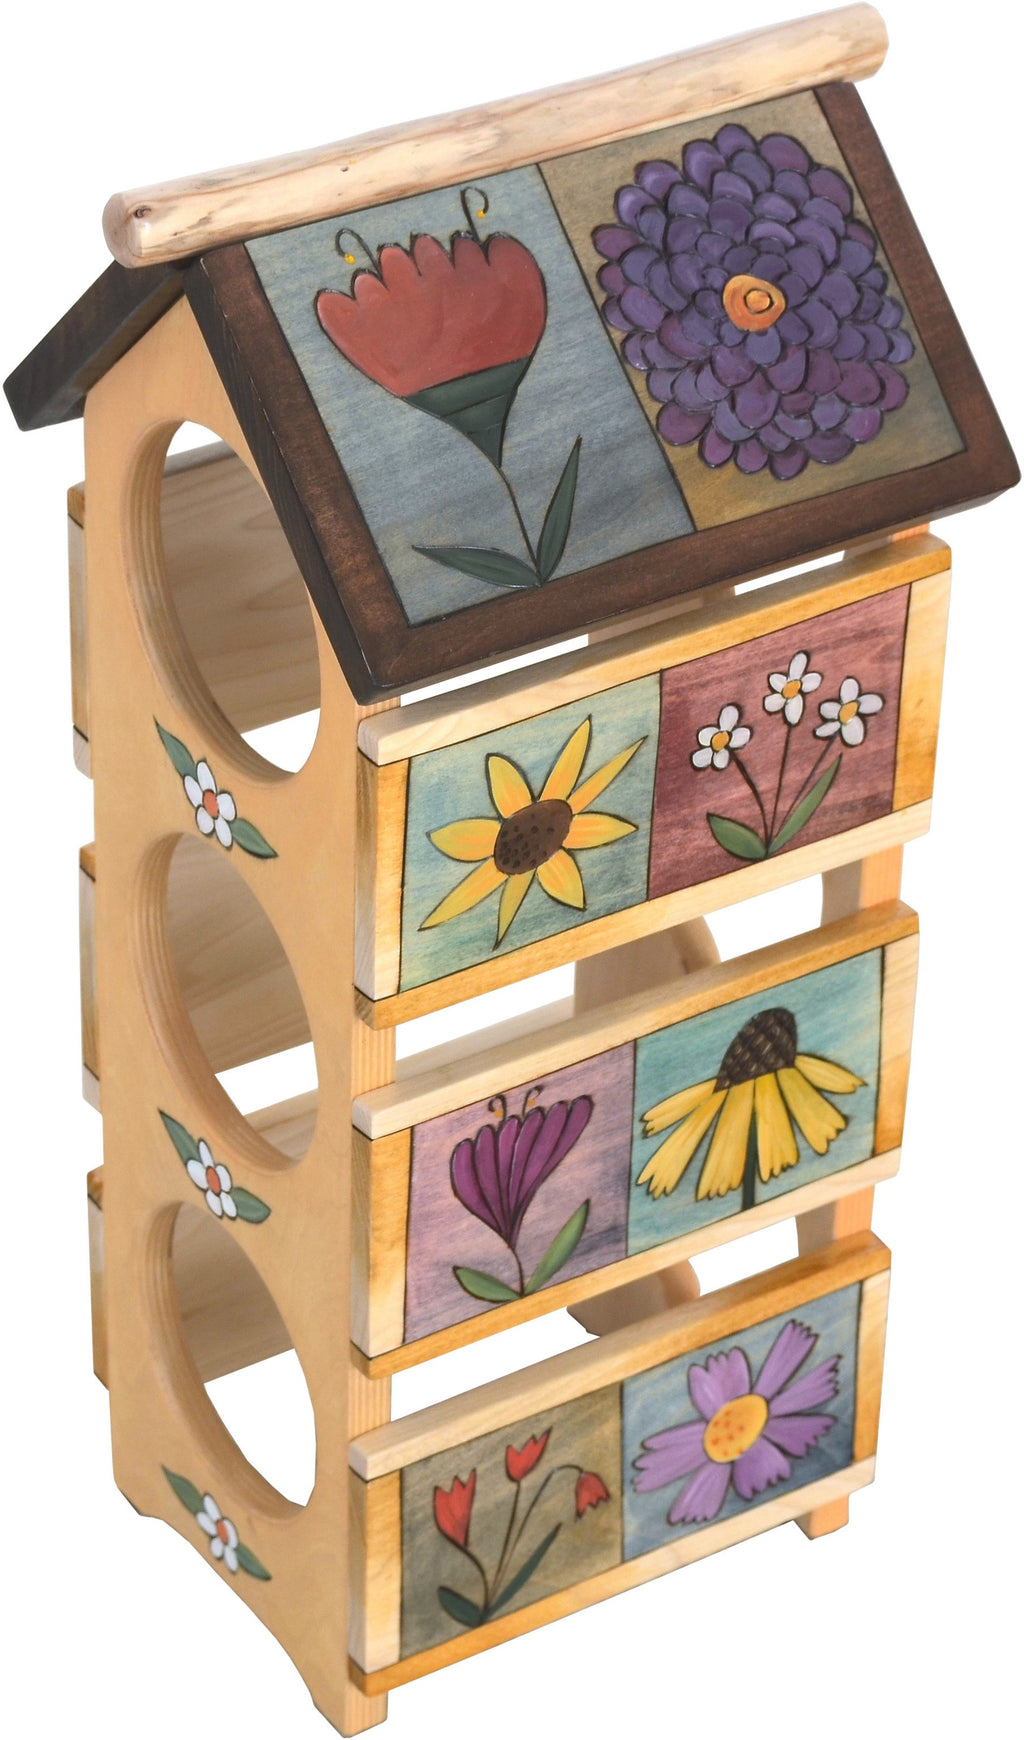 Sticks handmade wine rack with lovely floral motif